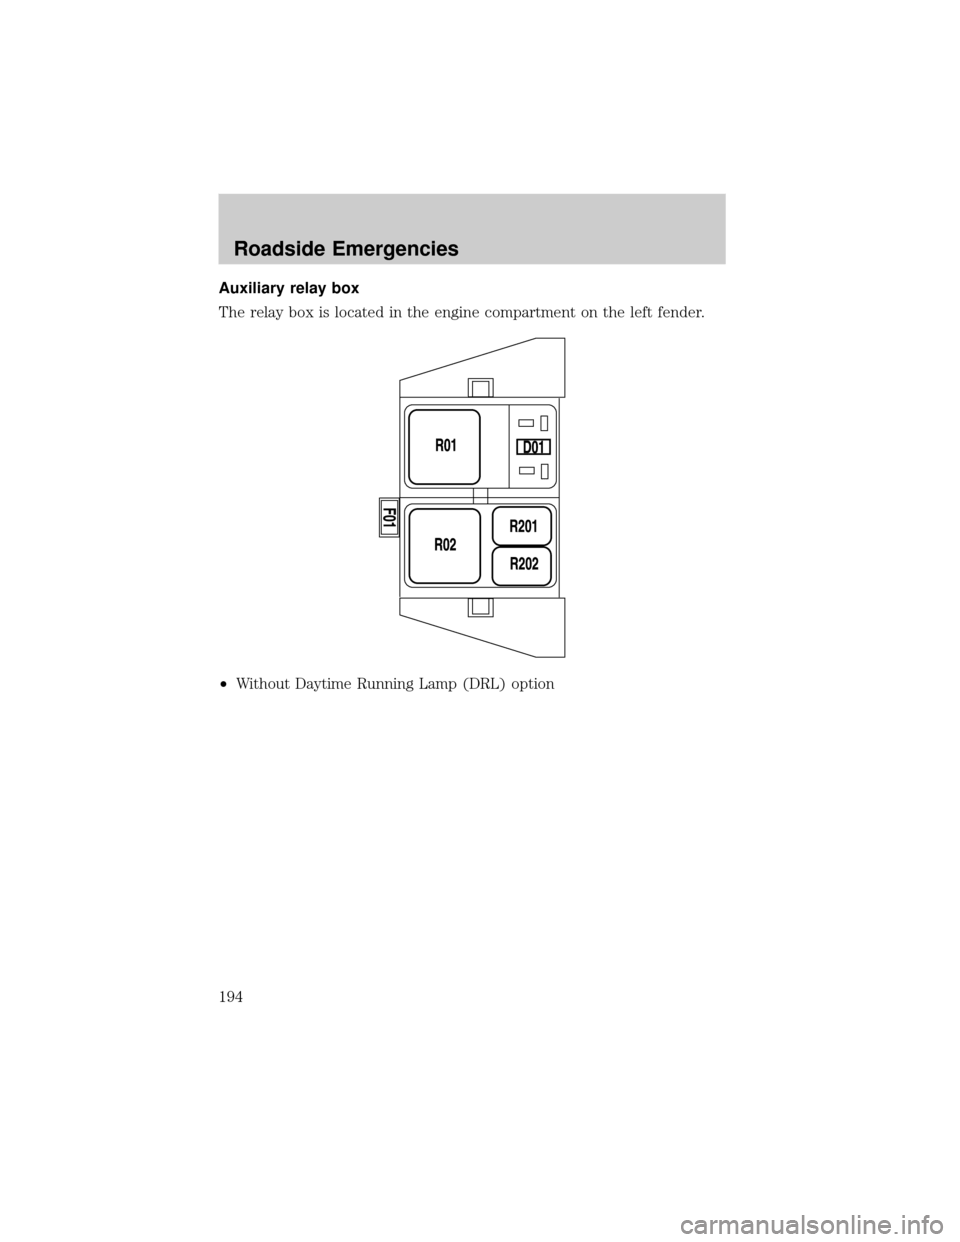 FORD F150 2004 11.G Owners Manual (280 Pages), Page 200